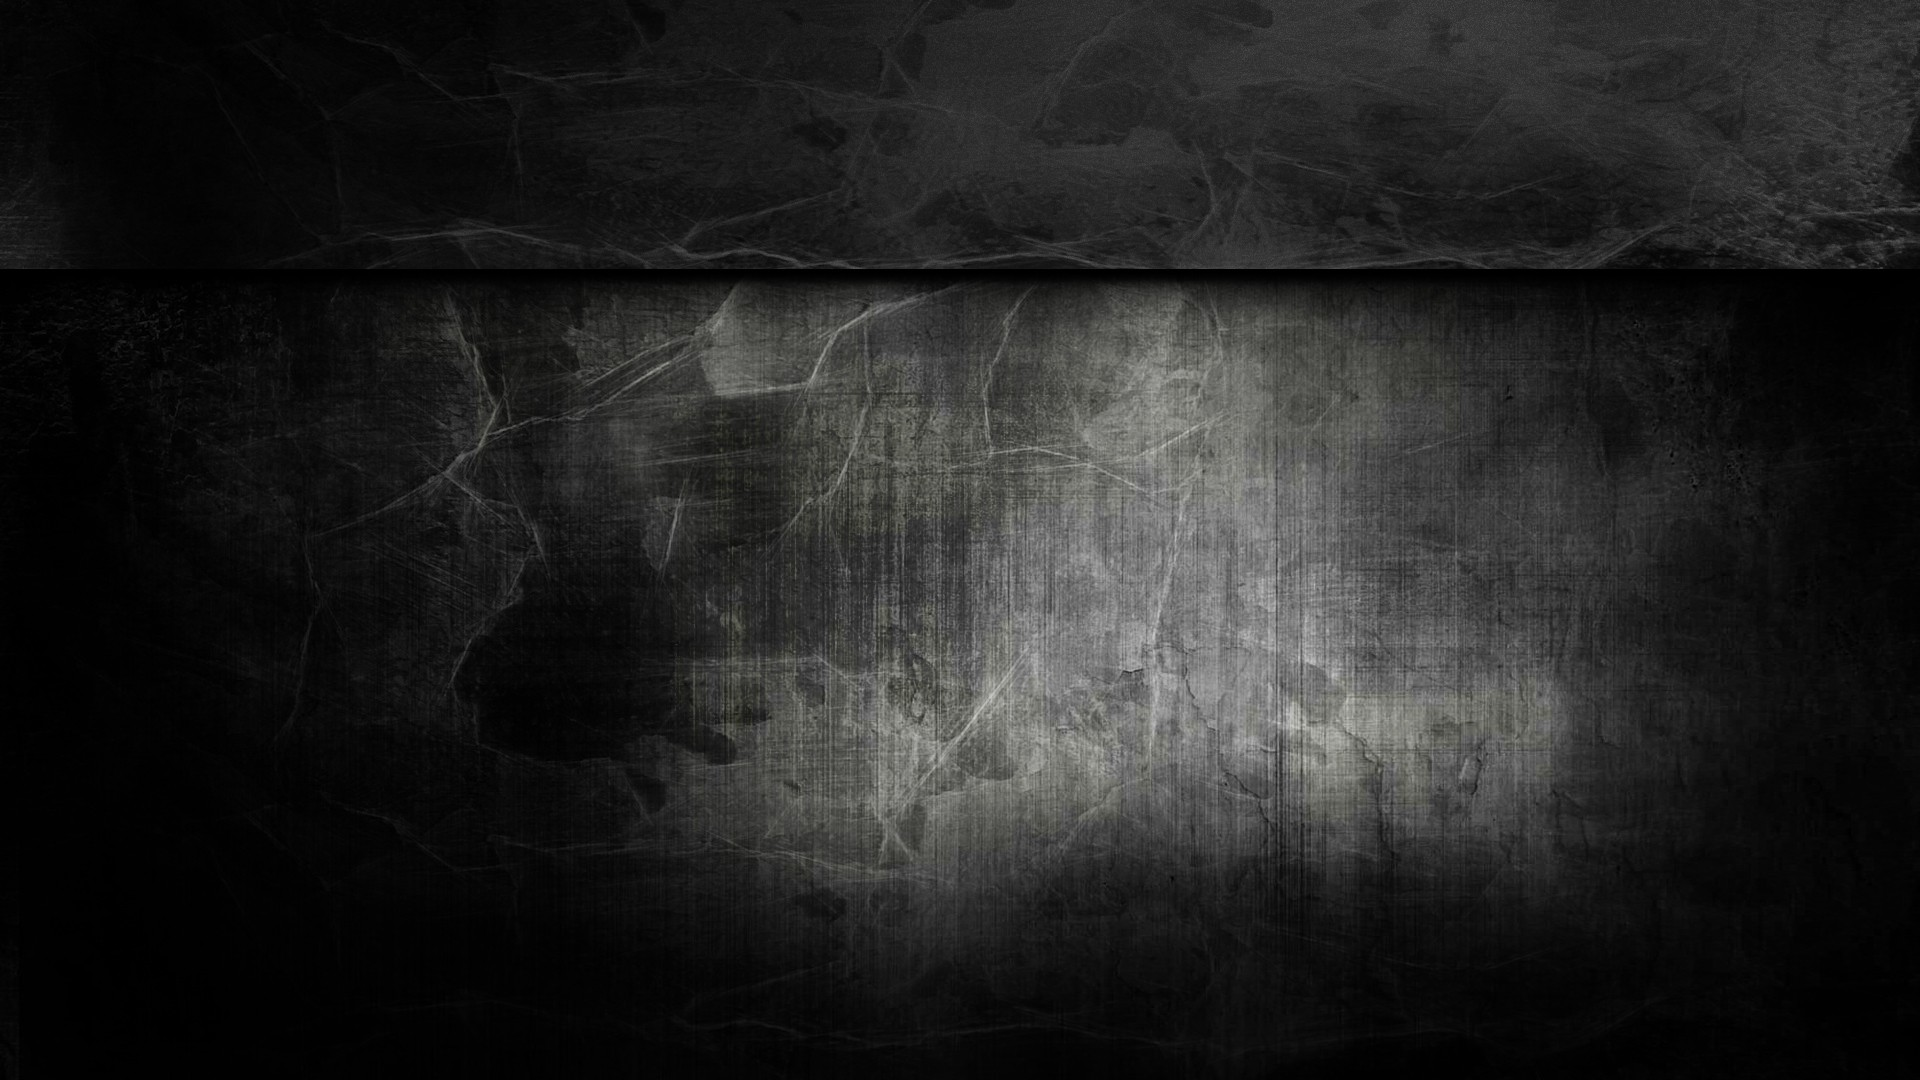 black dark grunge patterns surface templates textures backgrounds 1920x1080